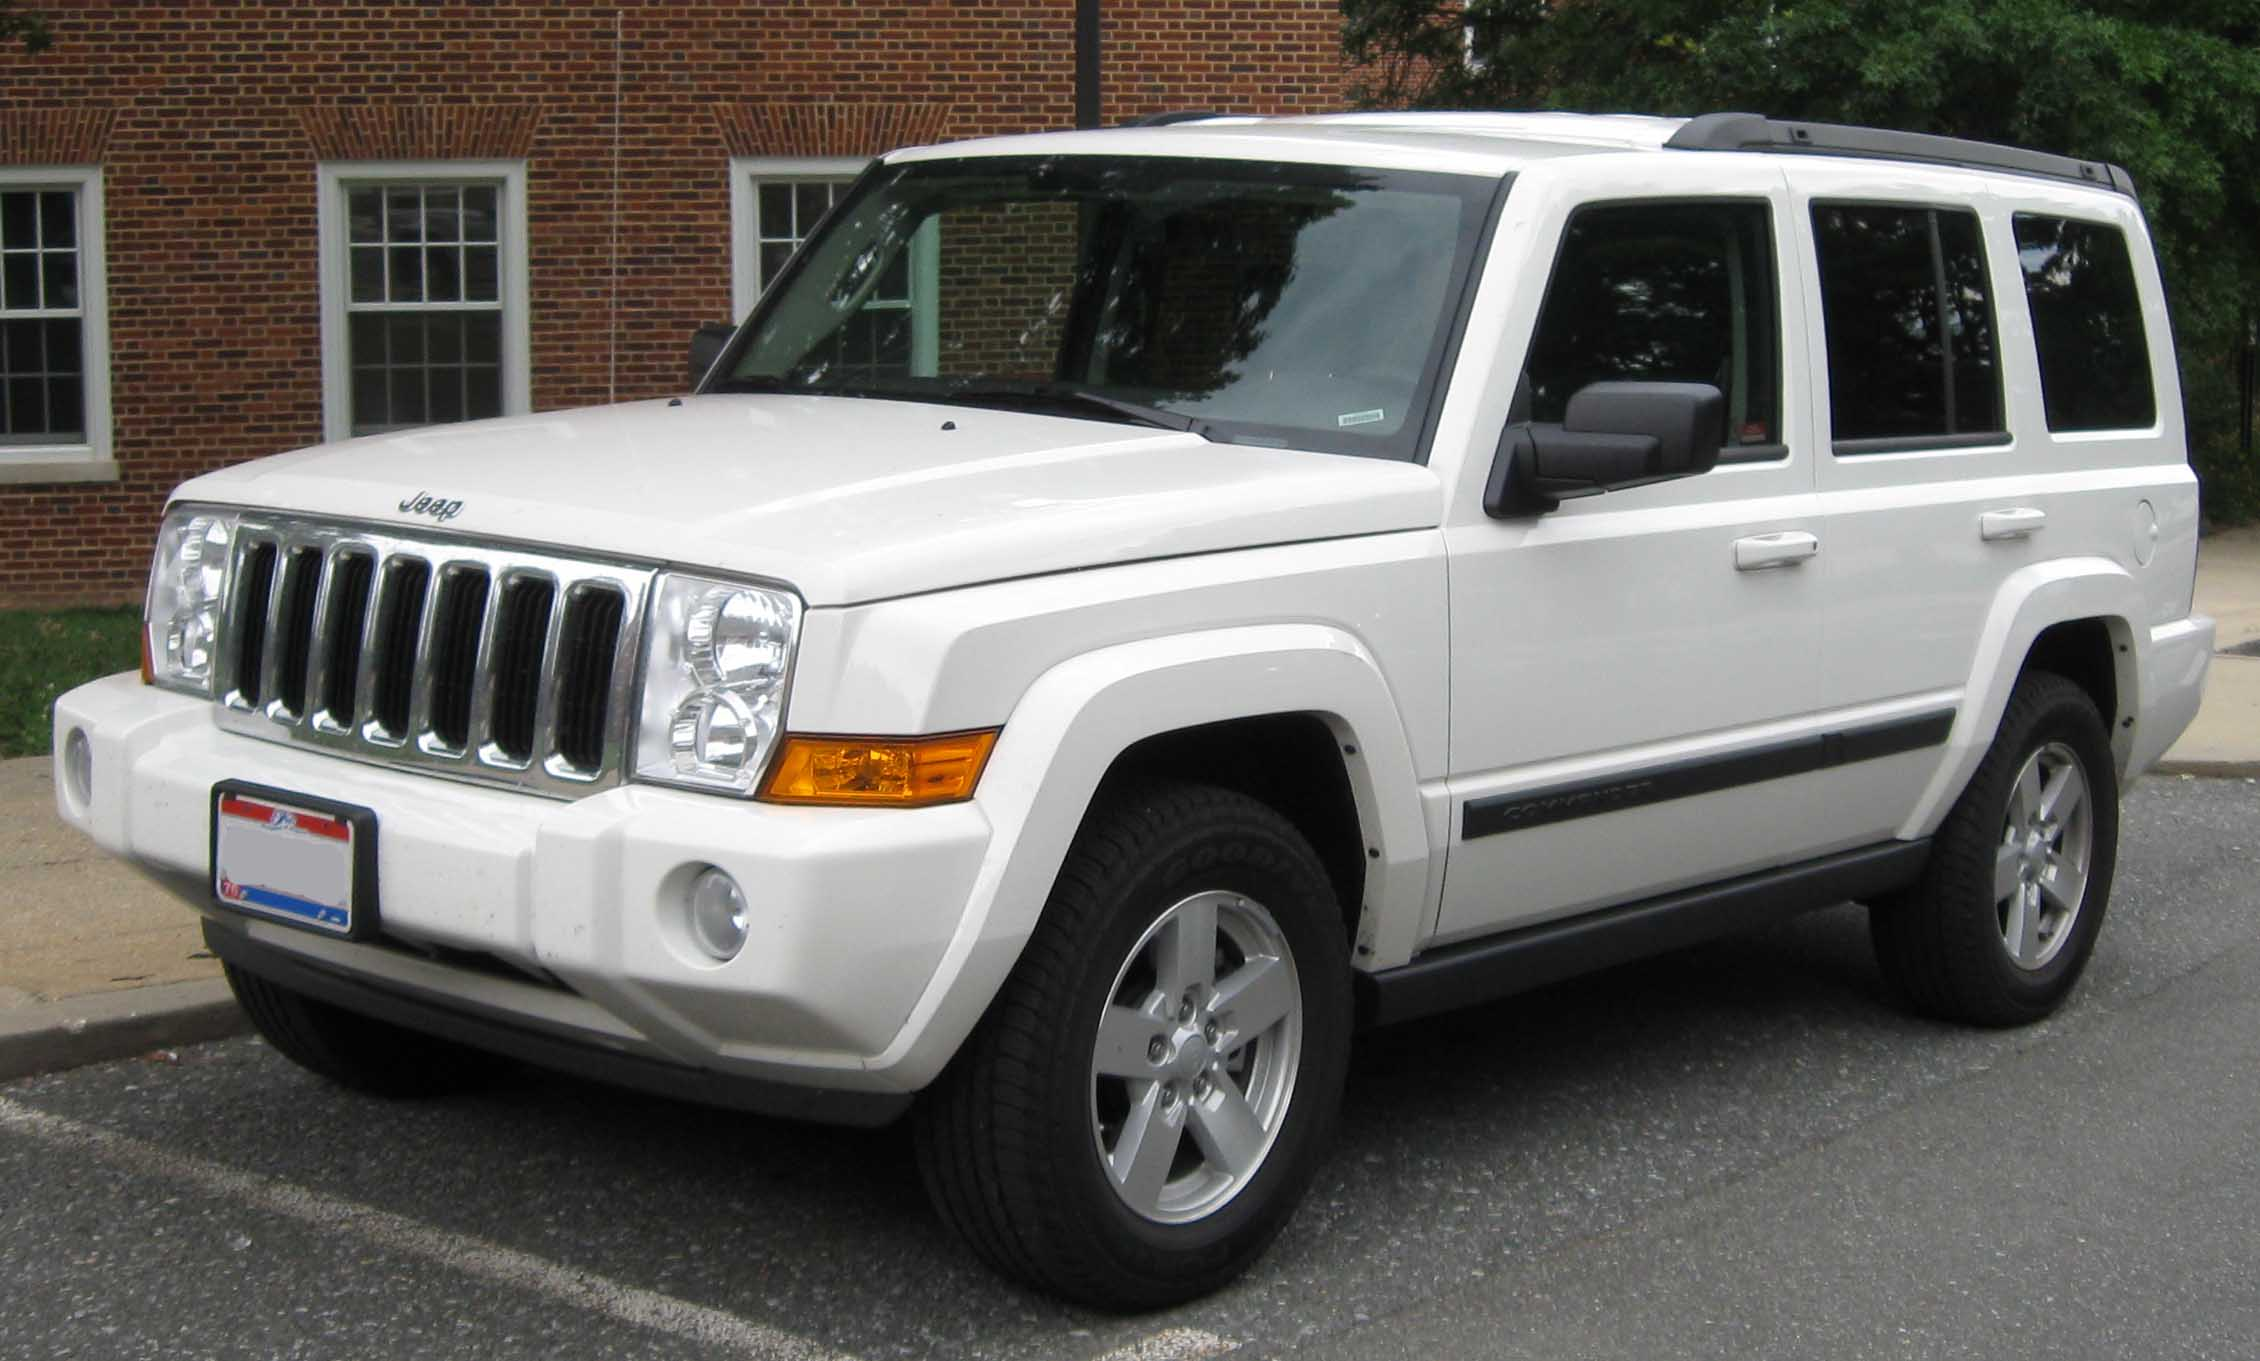 File:Jeep-Commander.jpg - Wikipedia, the free encyclopedia